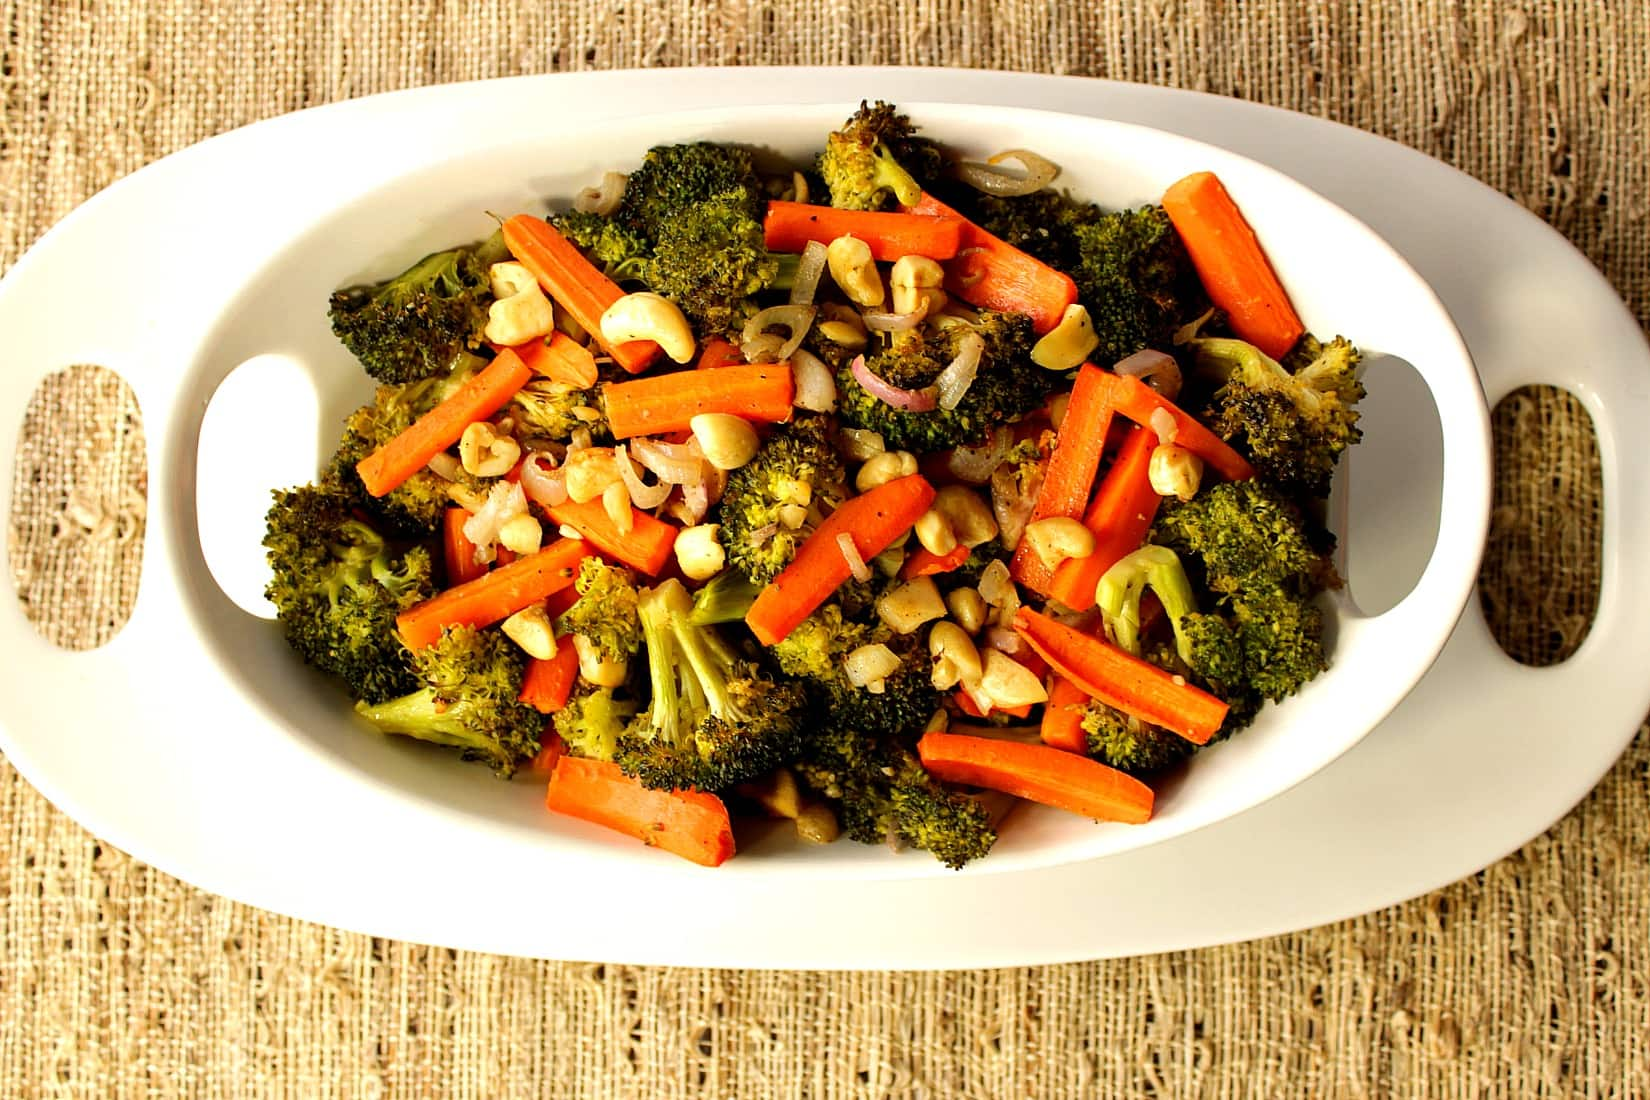 how to cook broccoli and carrots